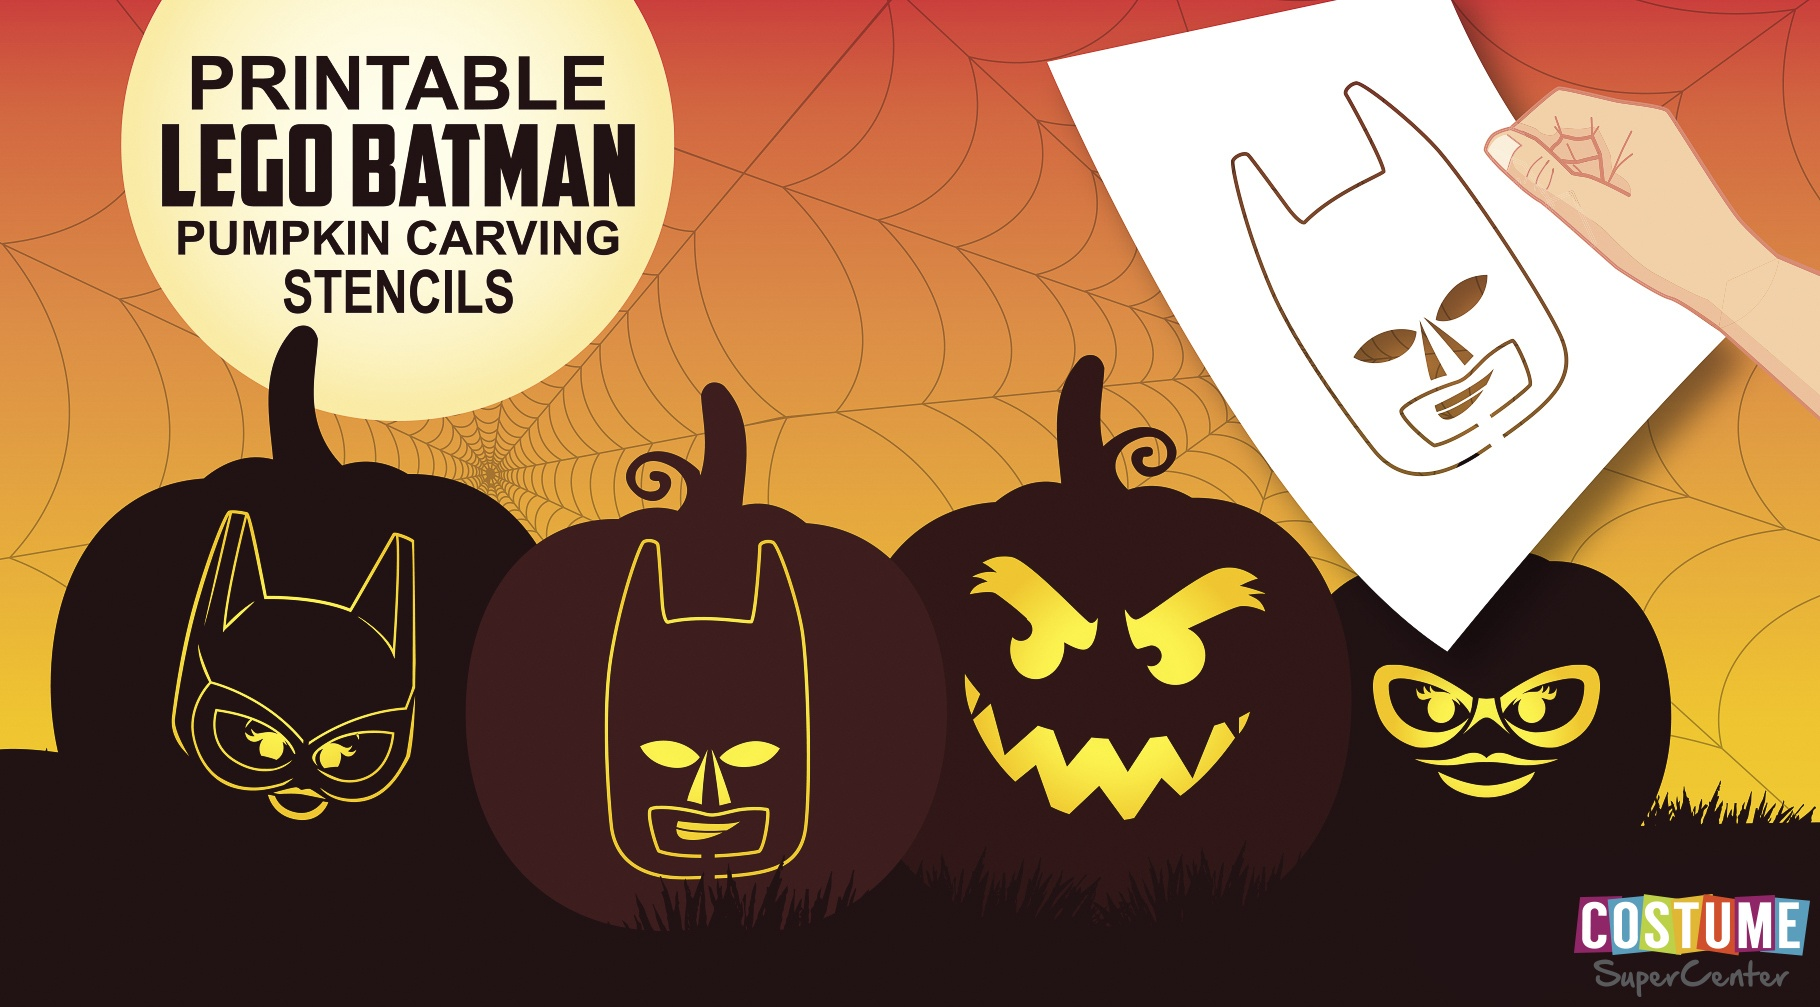 Fun And Free Printable Themed Pumpkin Carving Stencils — All For The - Free Printable Pumpkin Stencil